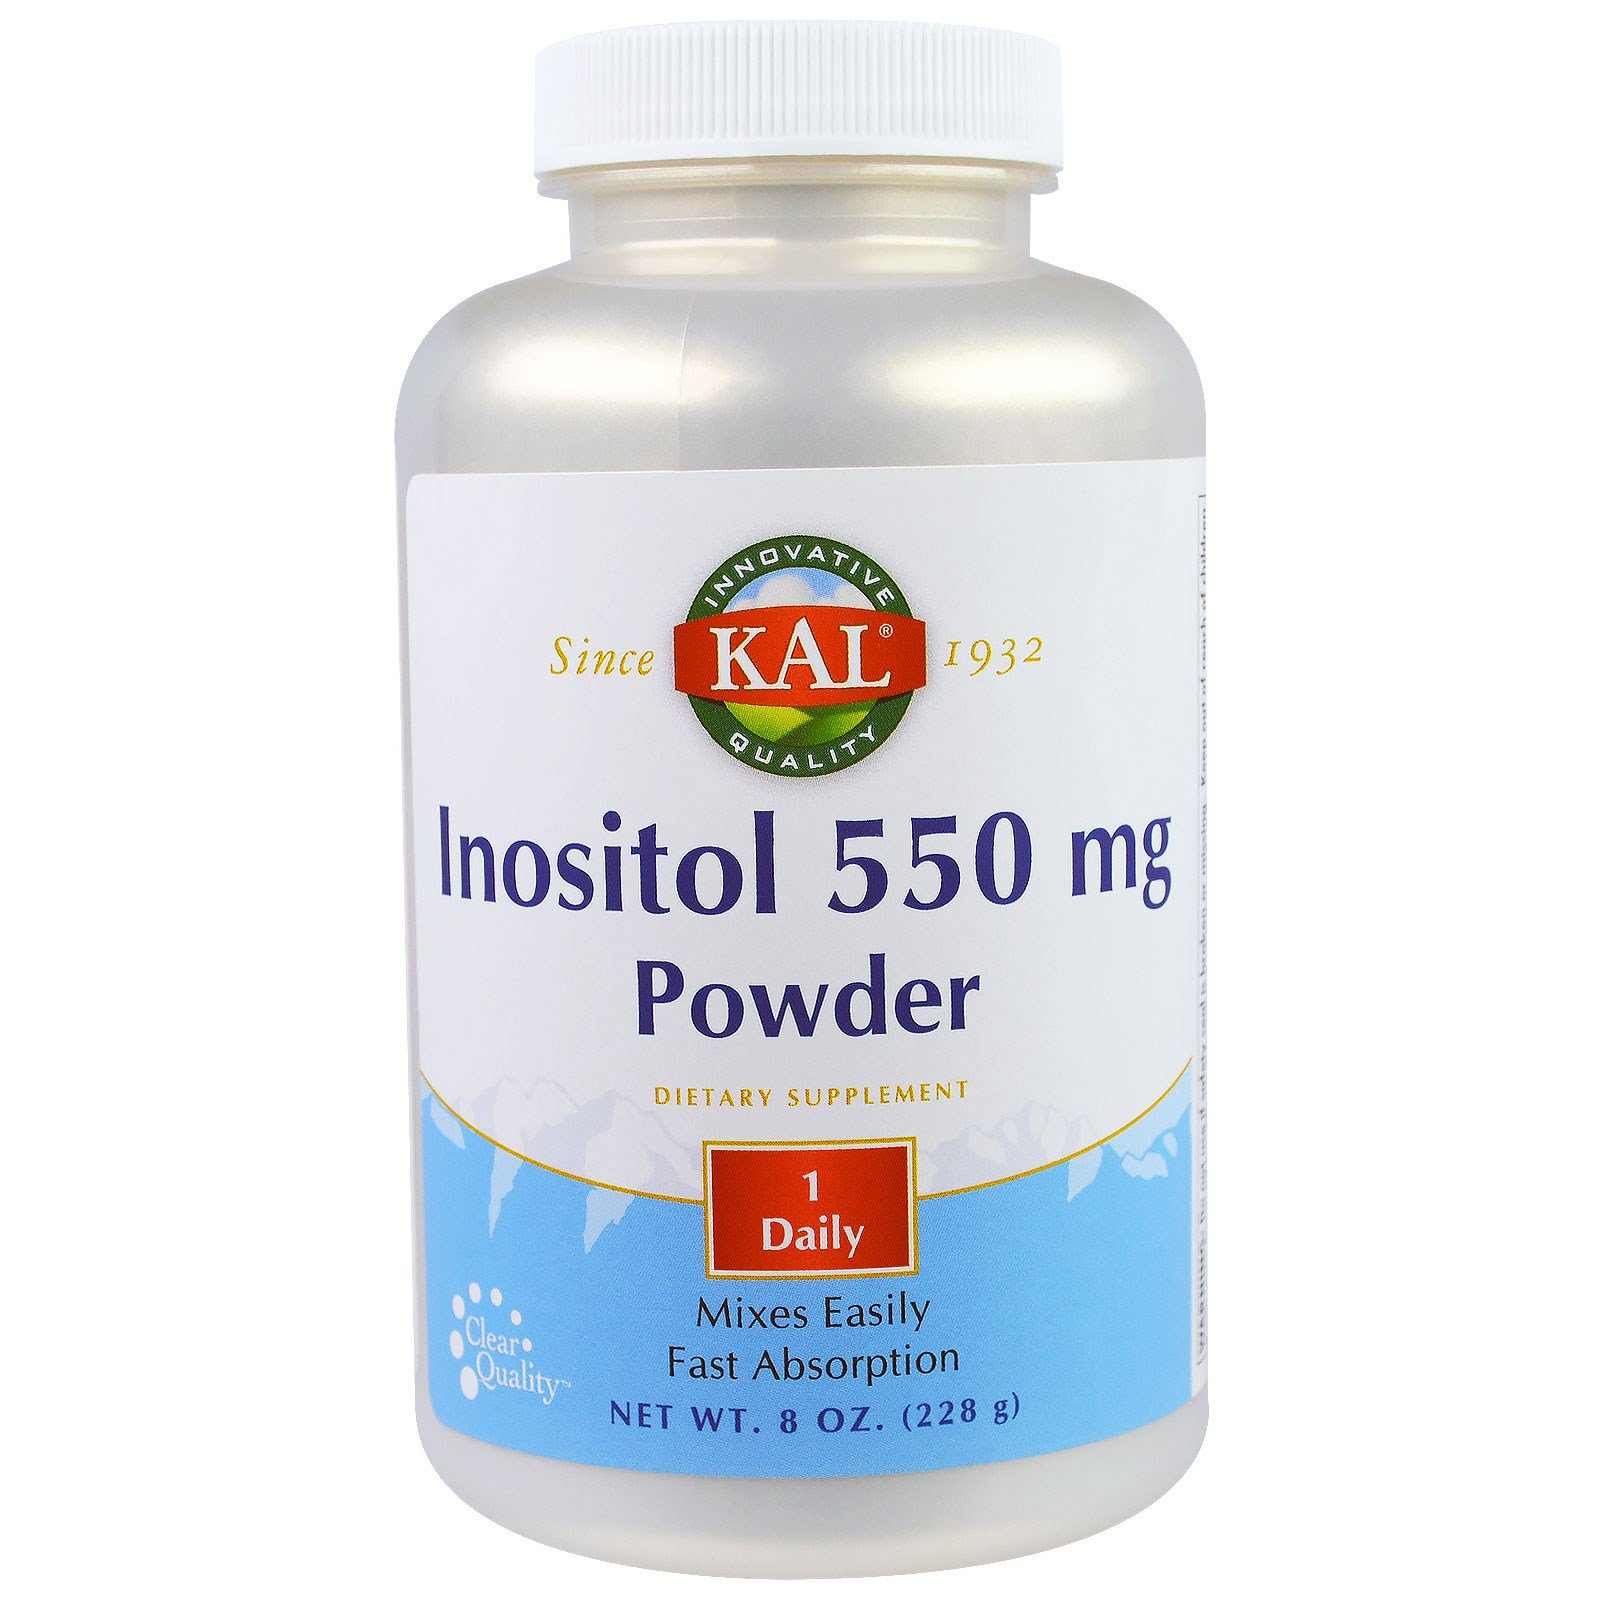 What does inositol do for you